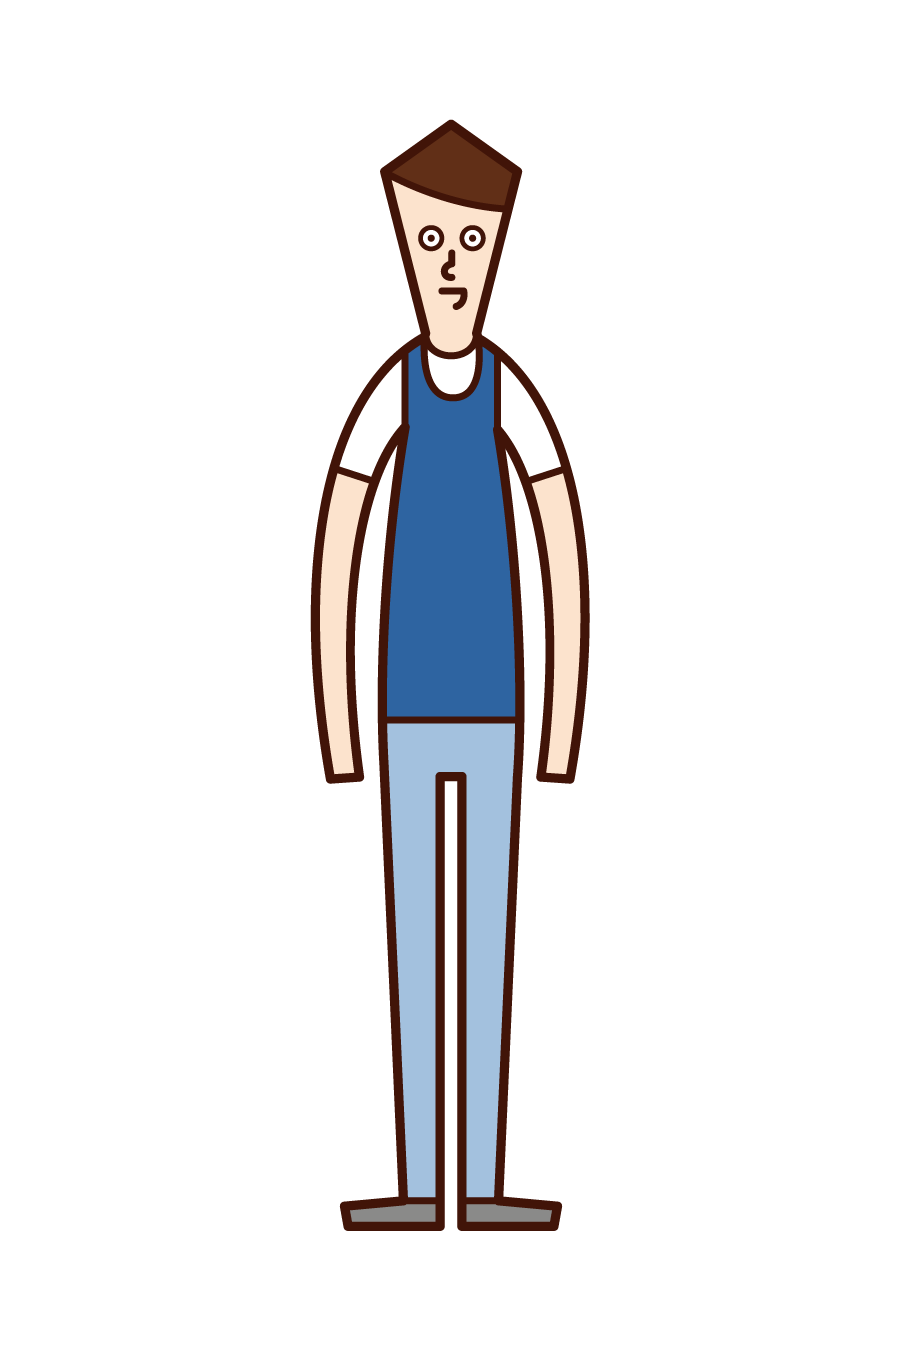 Illustration of a man wearing bibs